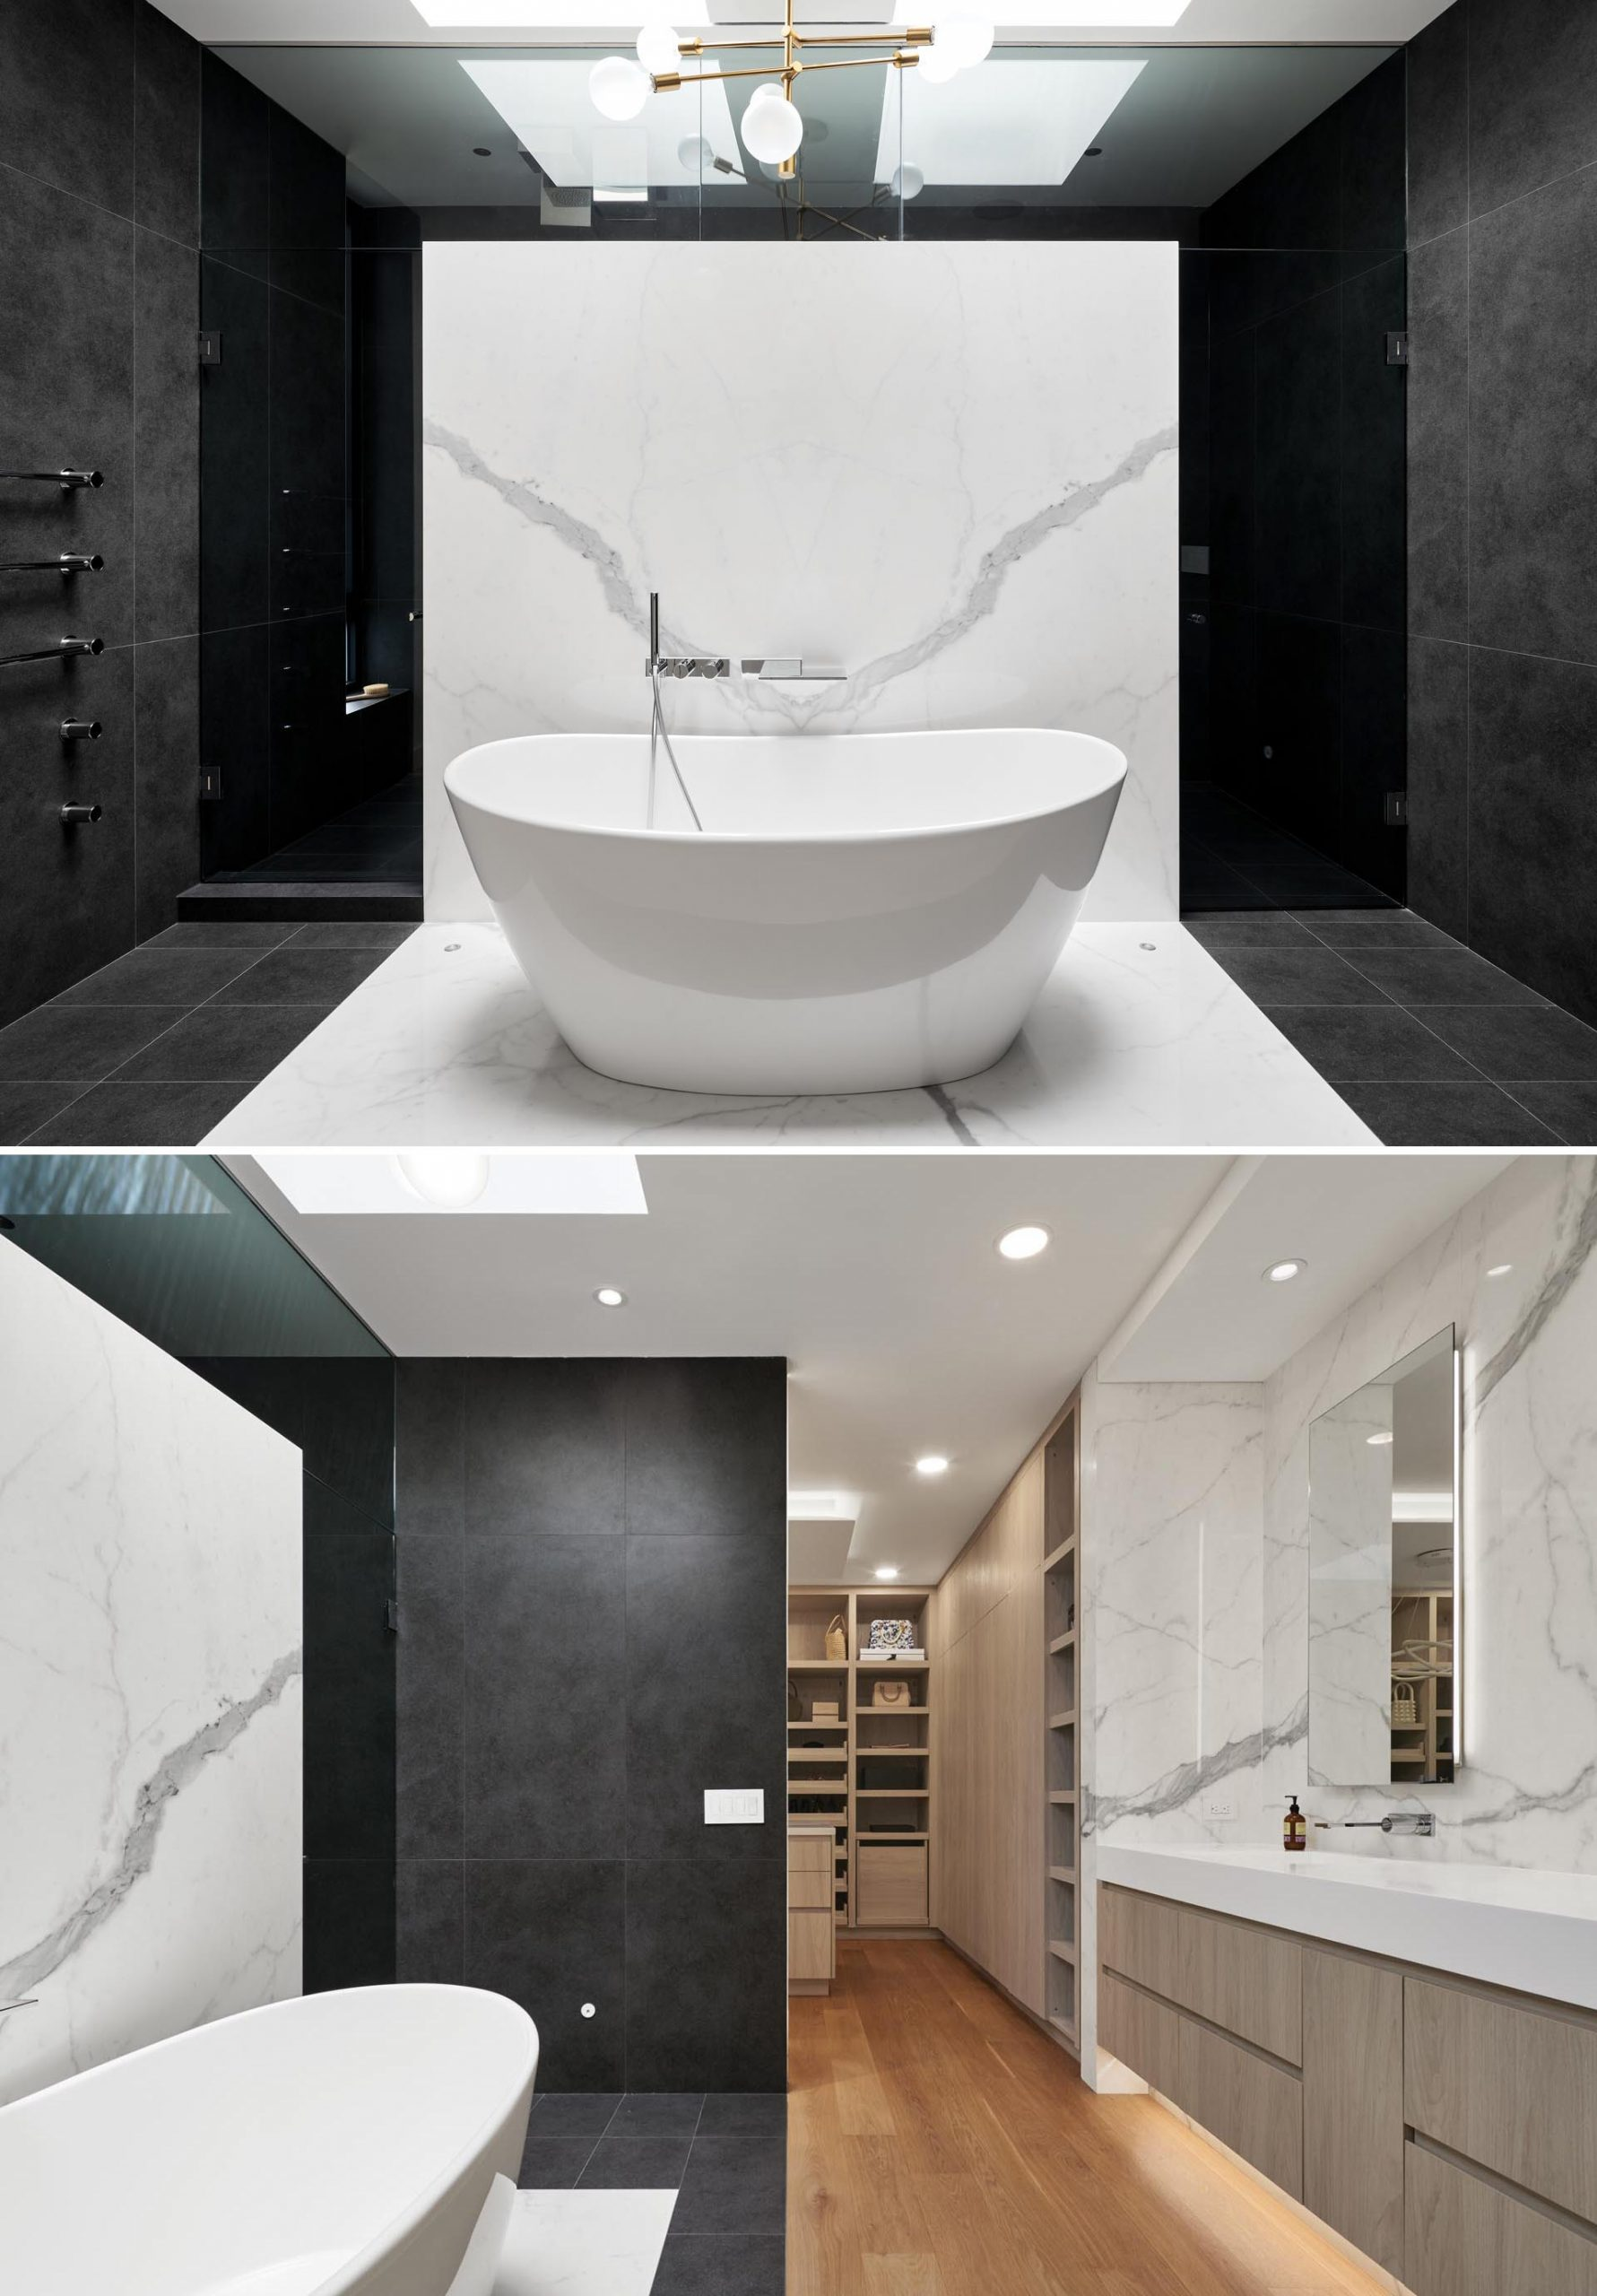 In this master bathroom, white and black porcelain slabs are combined to create a dramatic contrast.